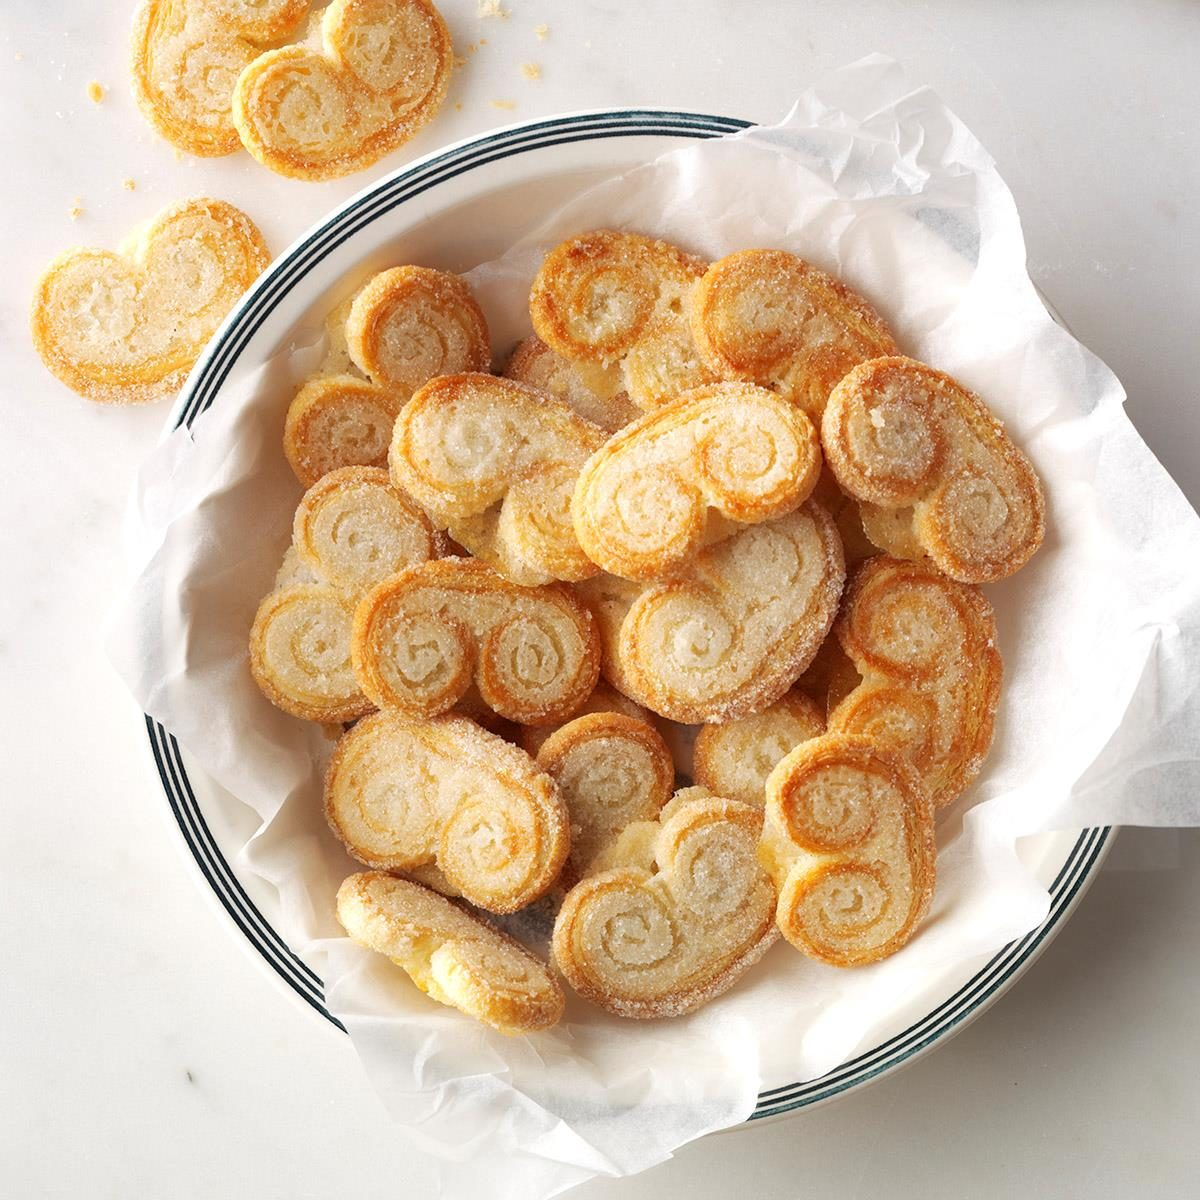 This 2-ingredient palmiers recipe calls for sugar and puff pastry.